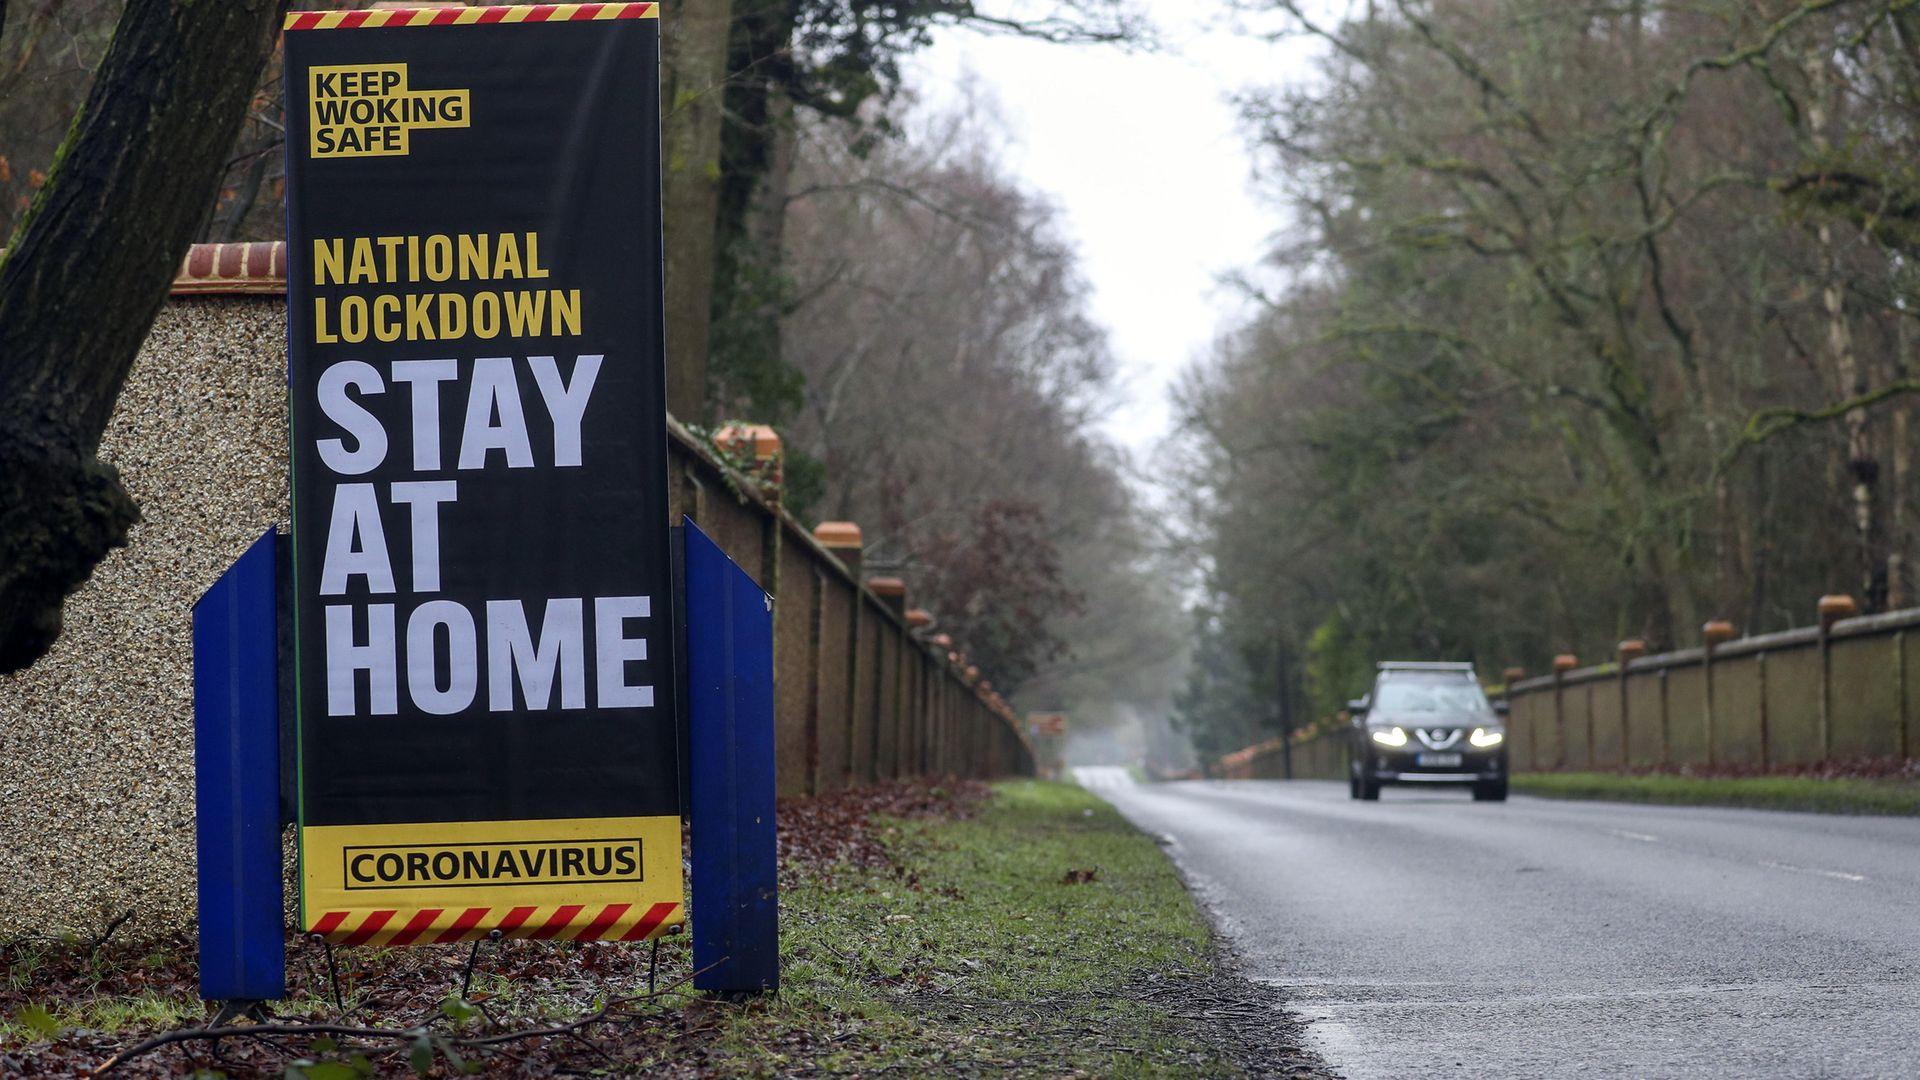 A coronavirus information sign in Brookwood, Surrey, during England's third national lockdown to curb the spread of coronavirus - Credit: PA